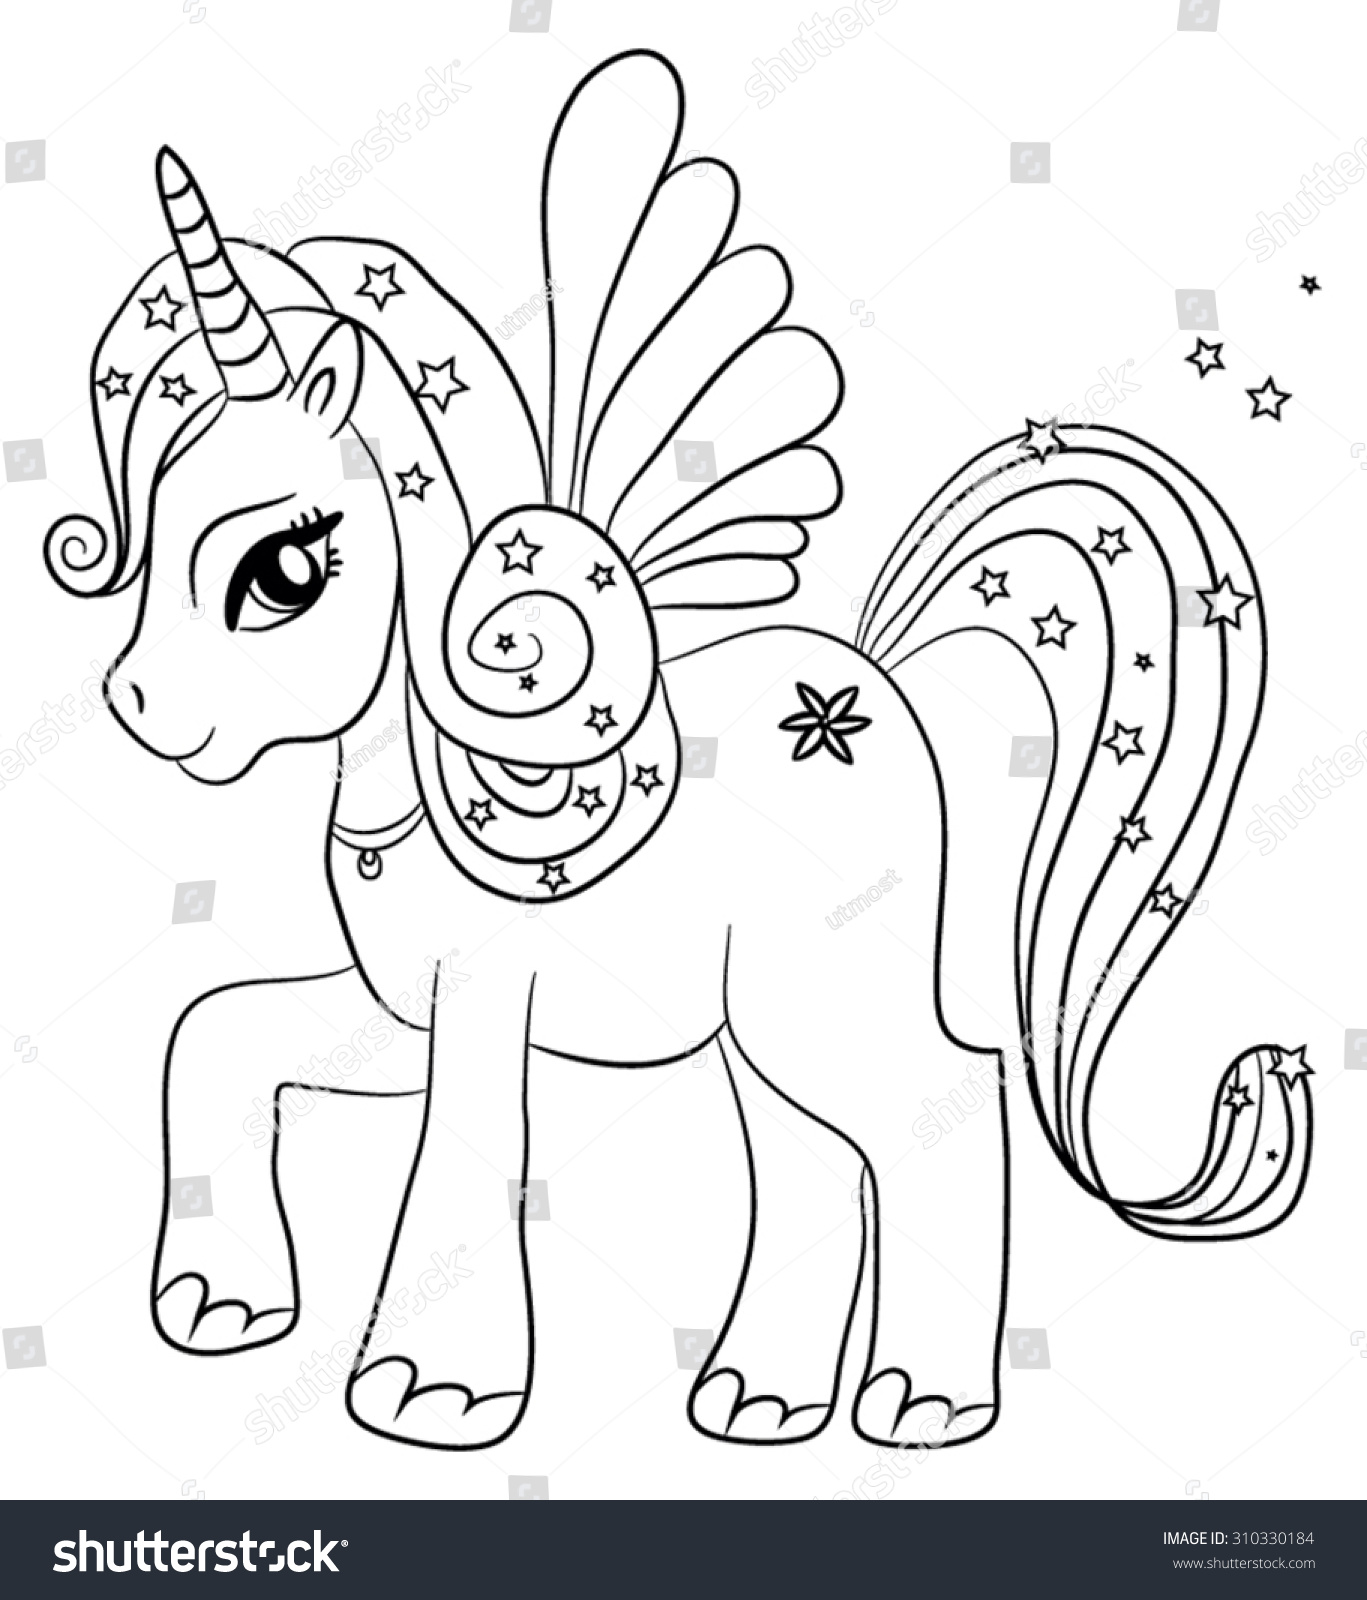 Cute Cartoon Fairytale Unicorn Coloring Page Stock Vector Royalty